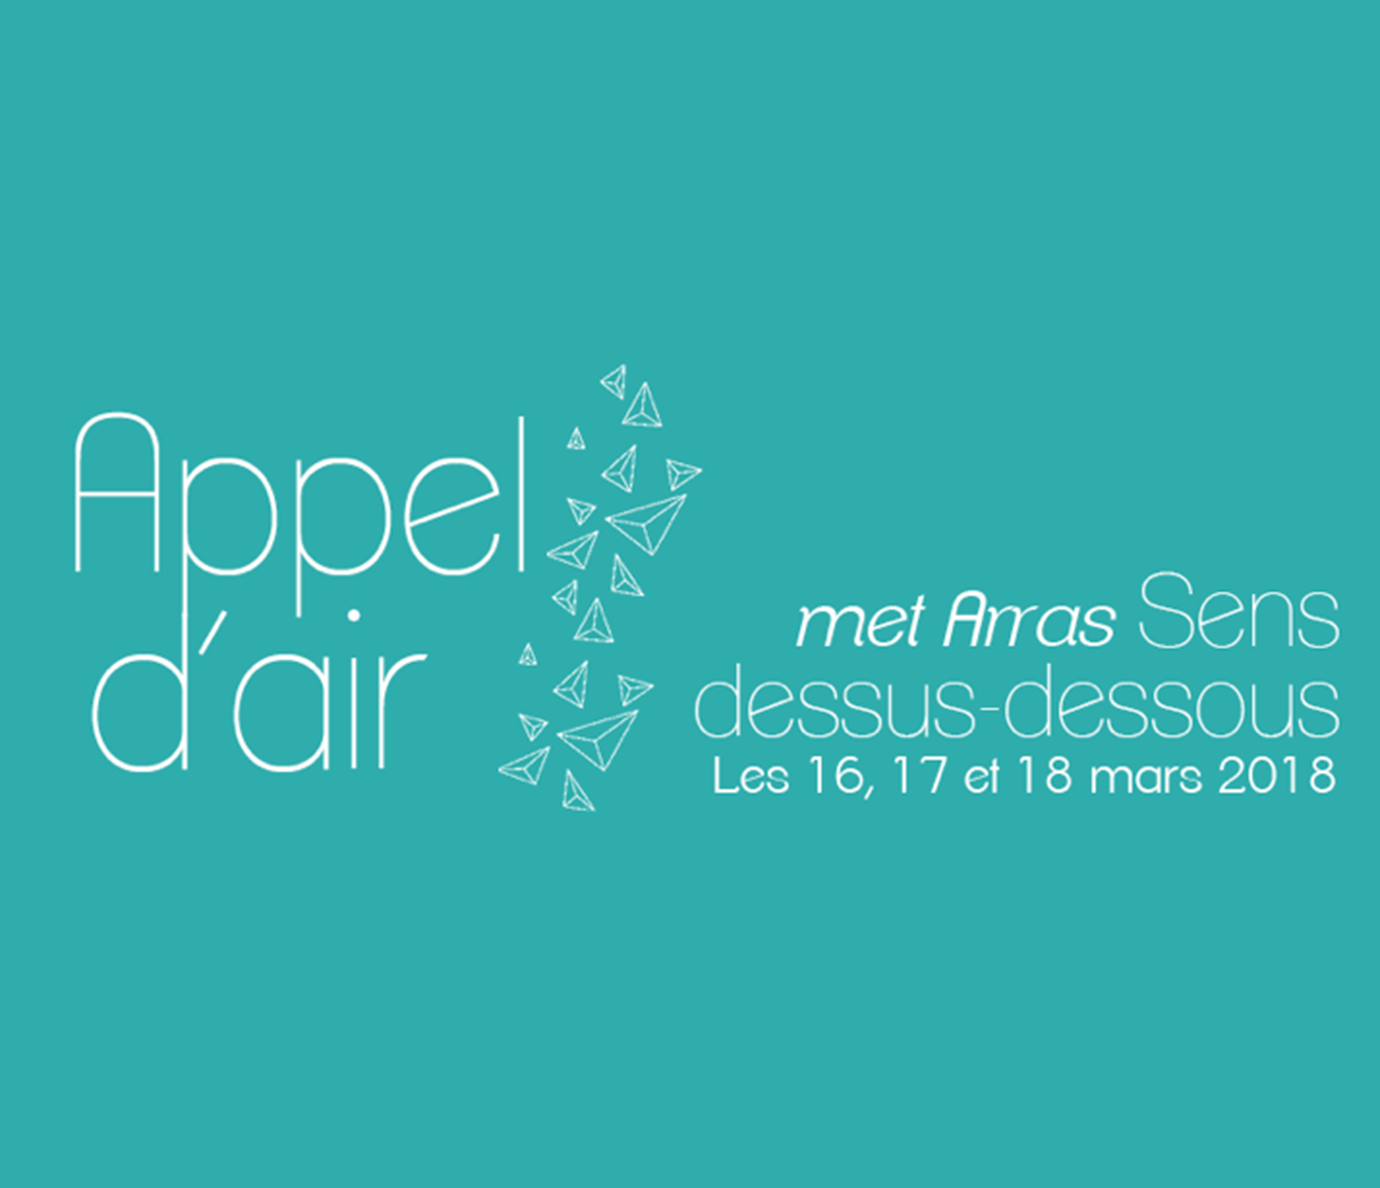 Appel d'air 3e édition